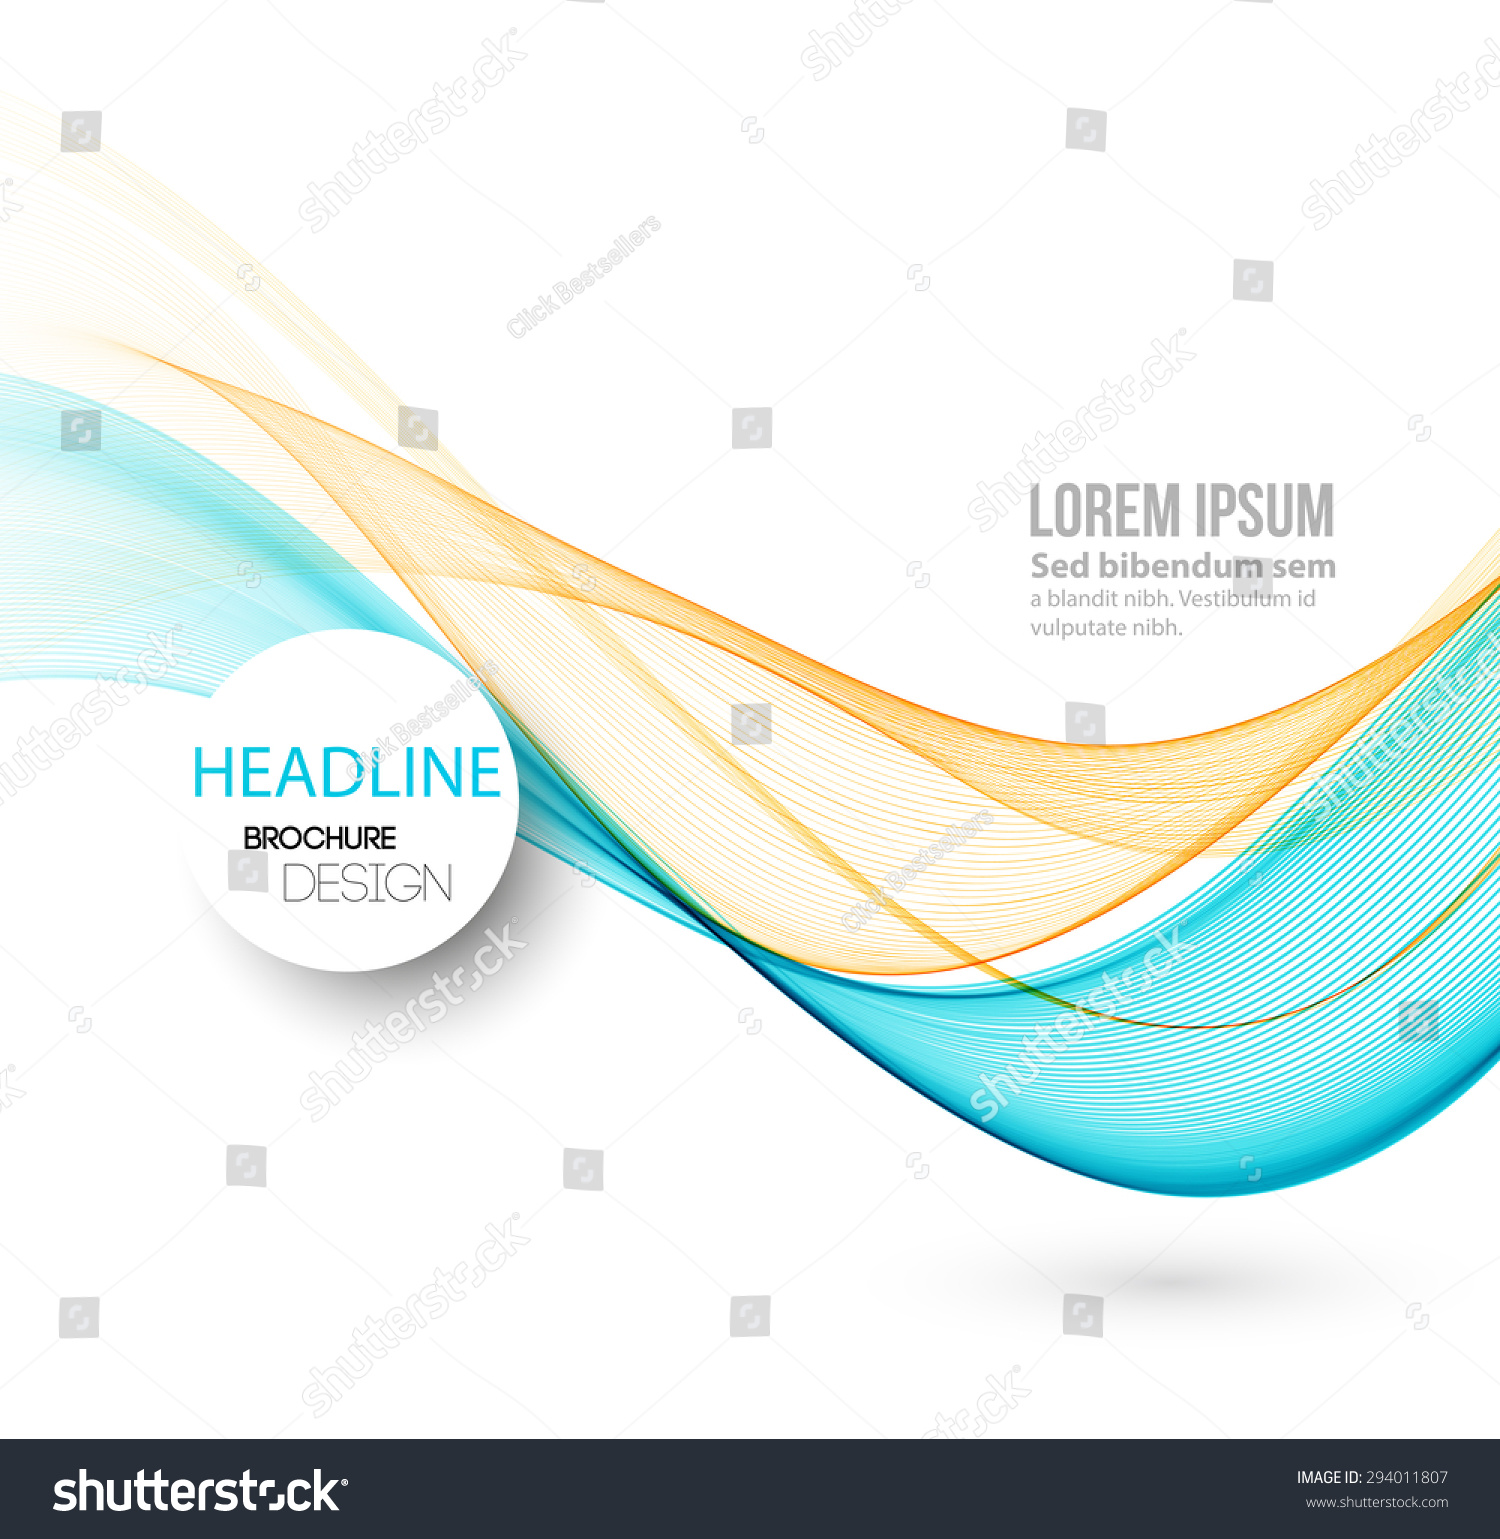 Curved lines background photo